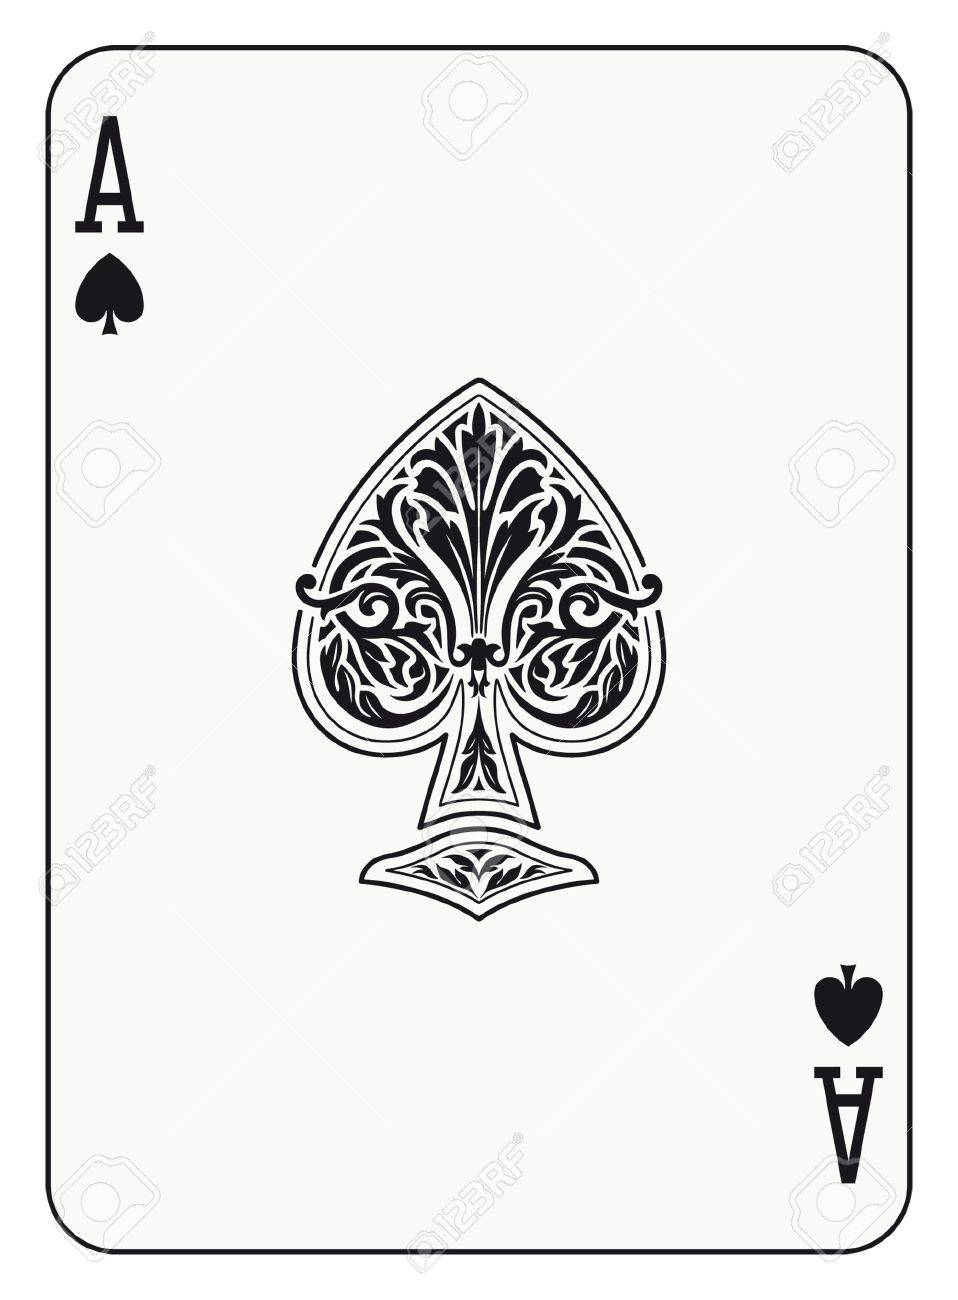 Ace of spades playing card royalty free cliparts vectors and stock ace of spades playing card stock vector 31585104 biocorpaavc Choice Image